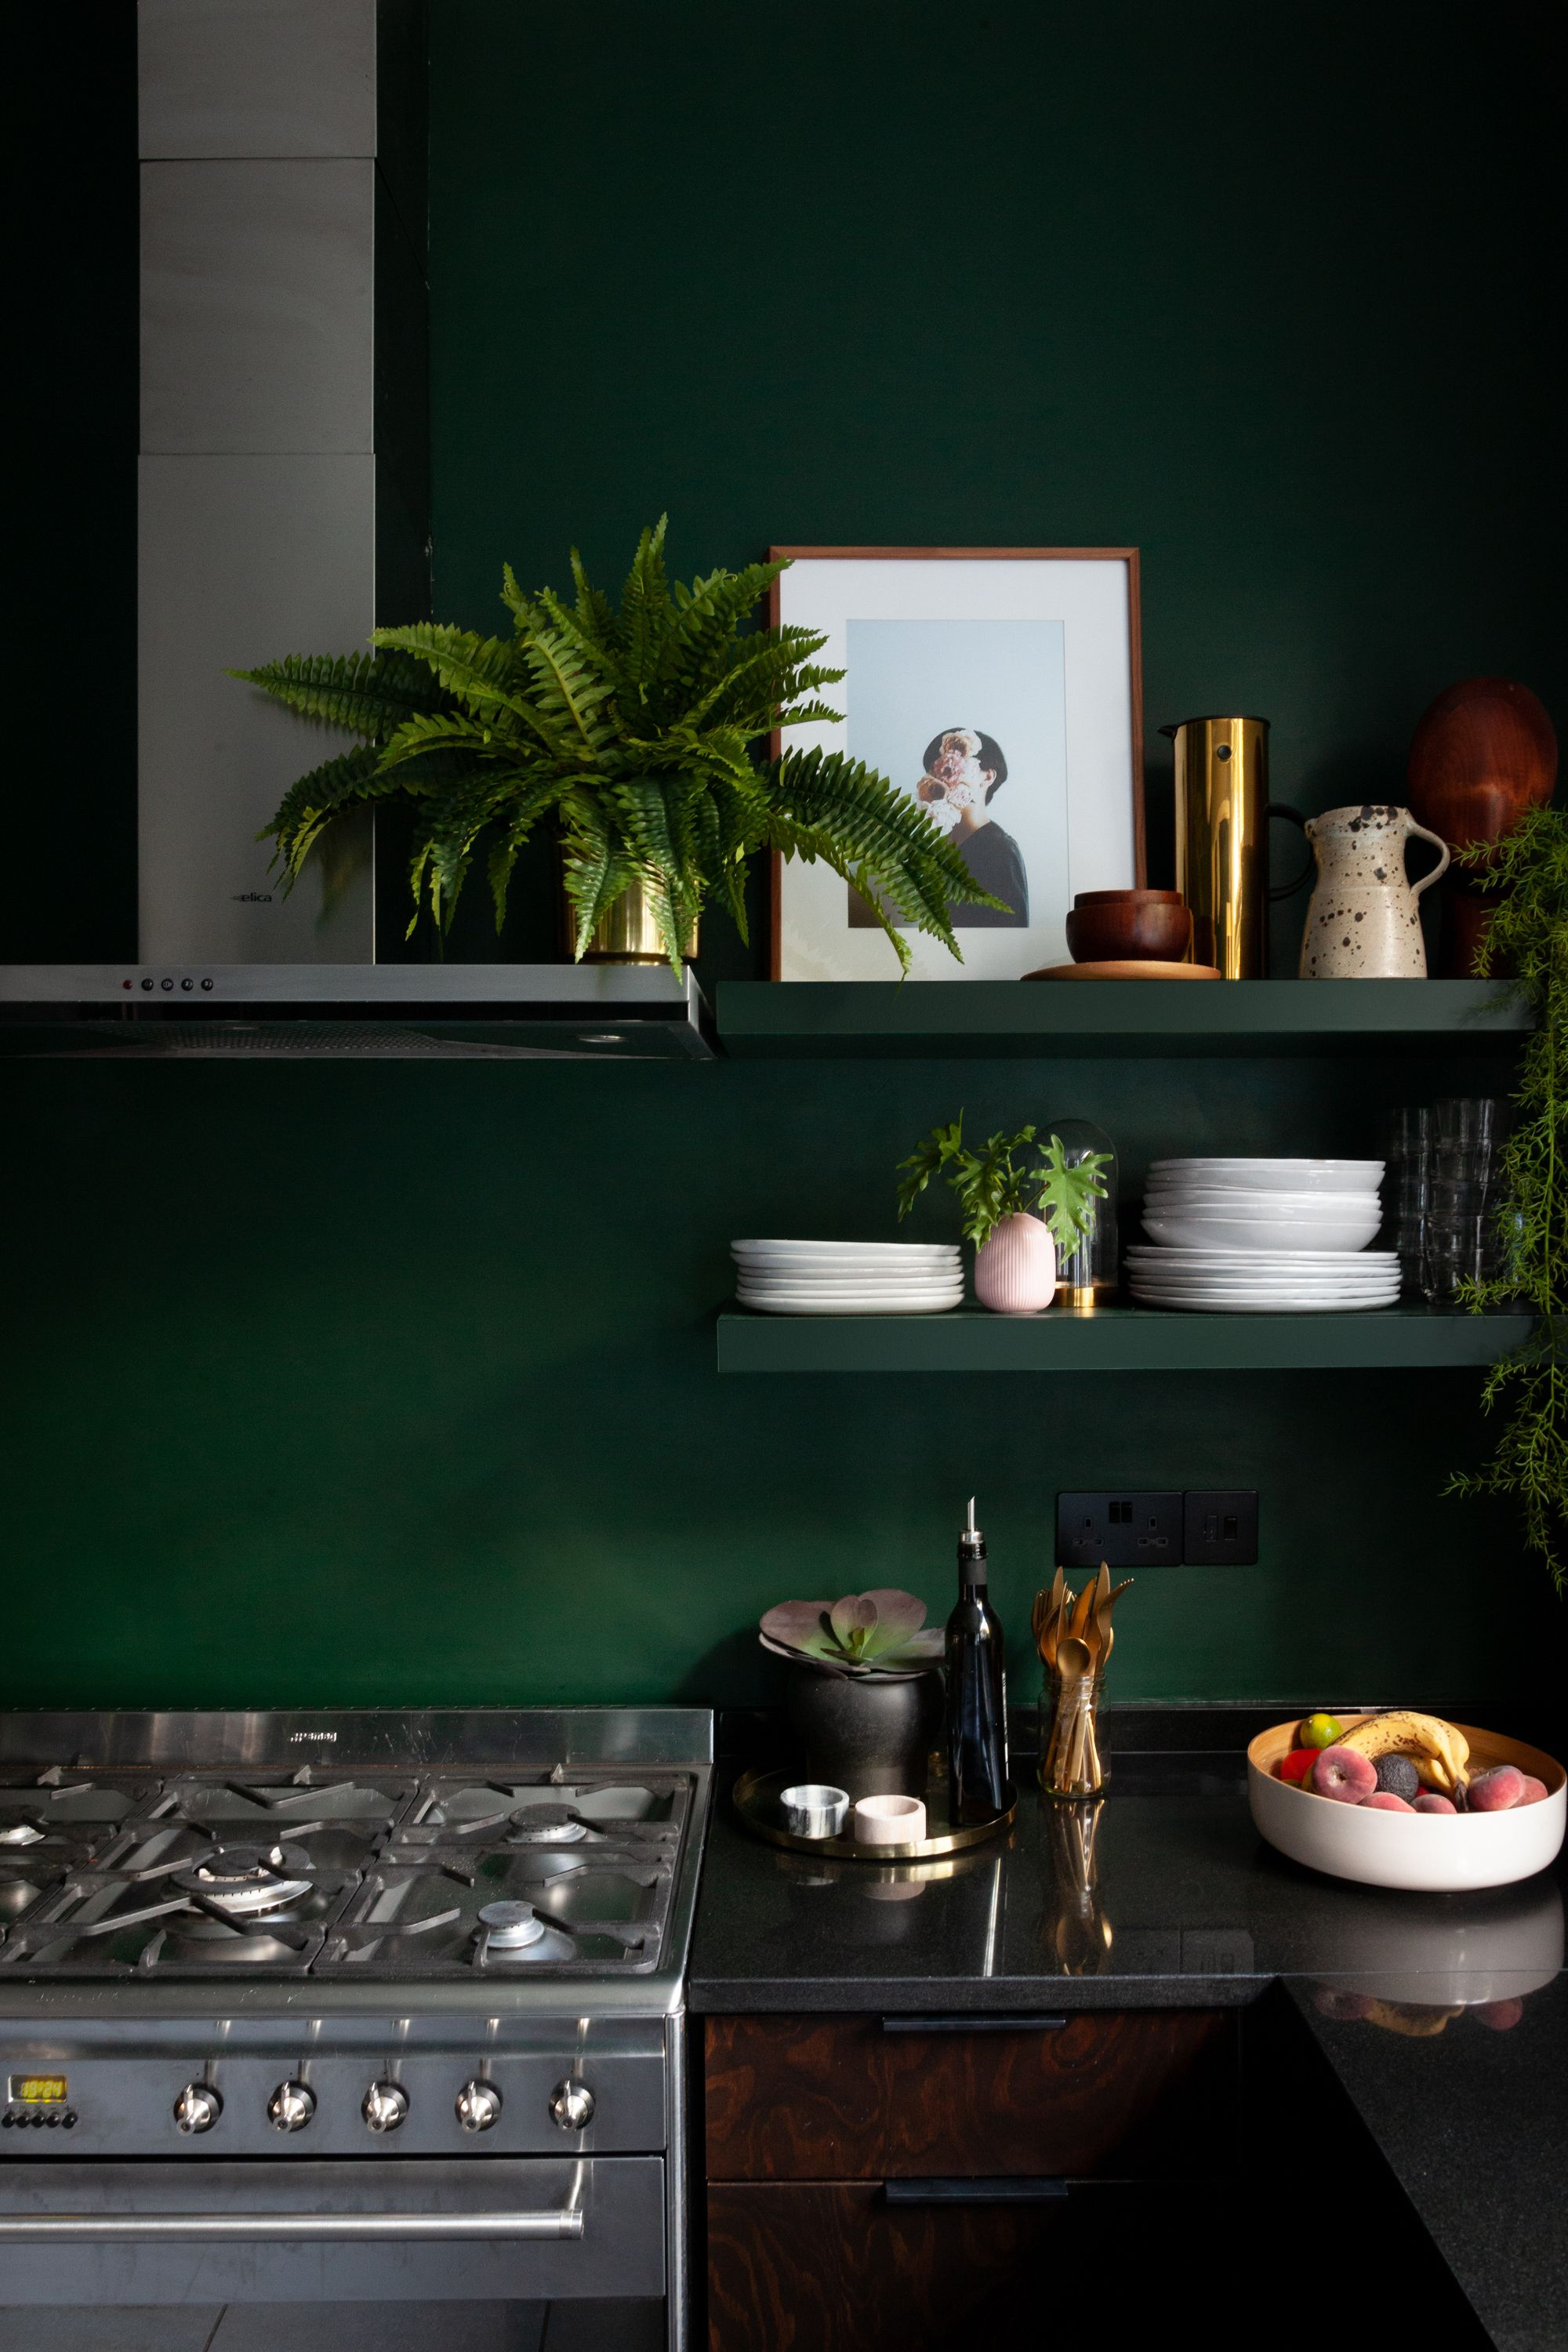 Wall Shelves Painted In A Valspar Deep Green For Kitchen Refurb With Helloflora In London Green Kitchen Beautiful Bedrooms Master Interiors Addict